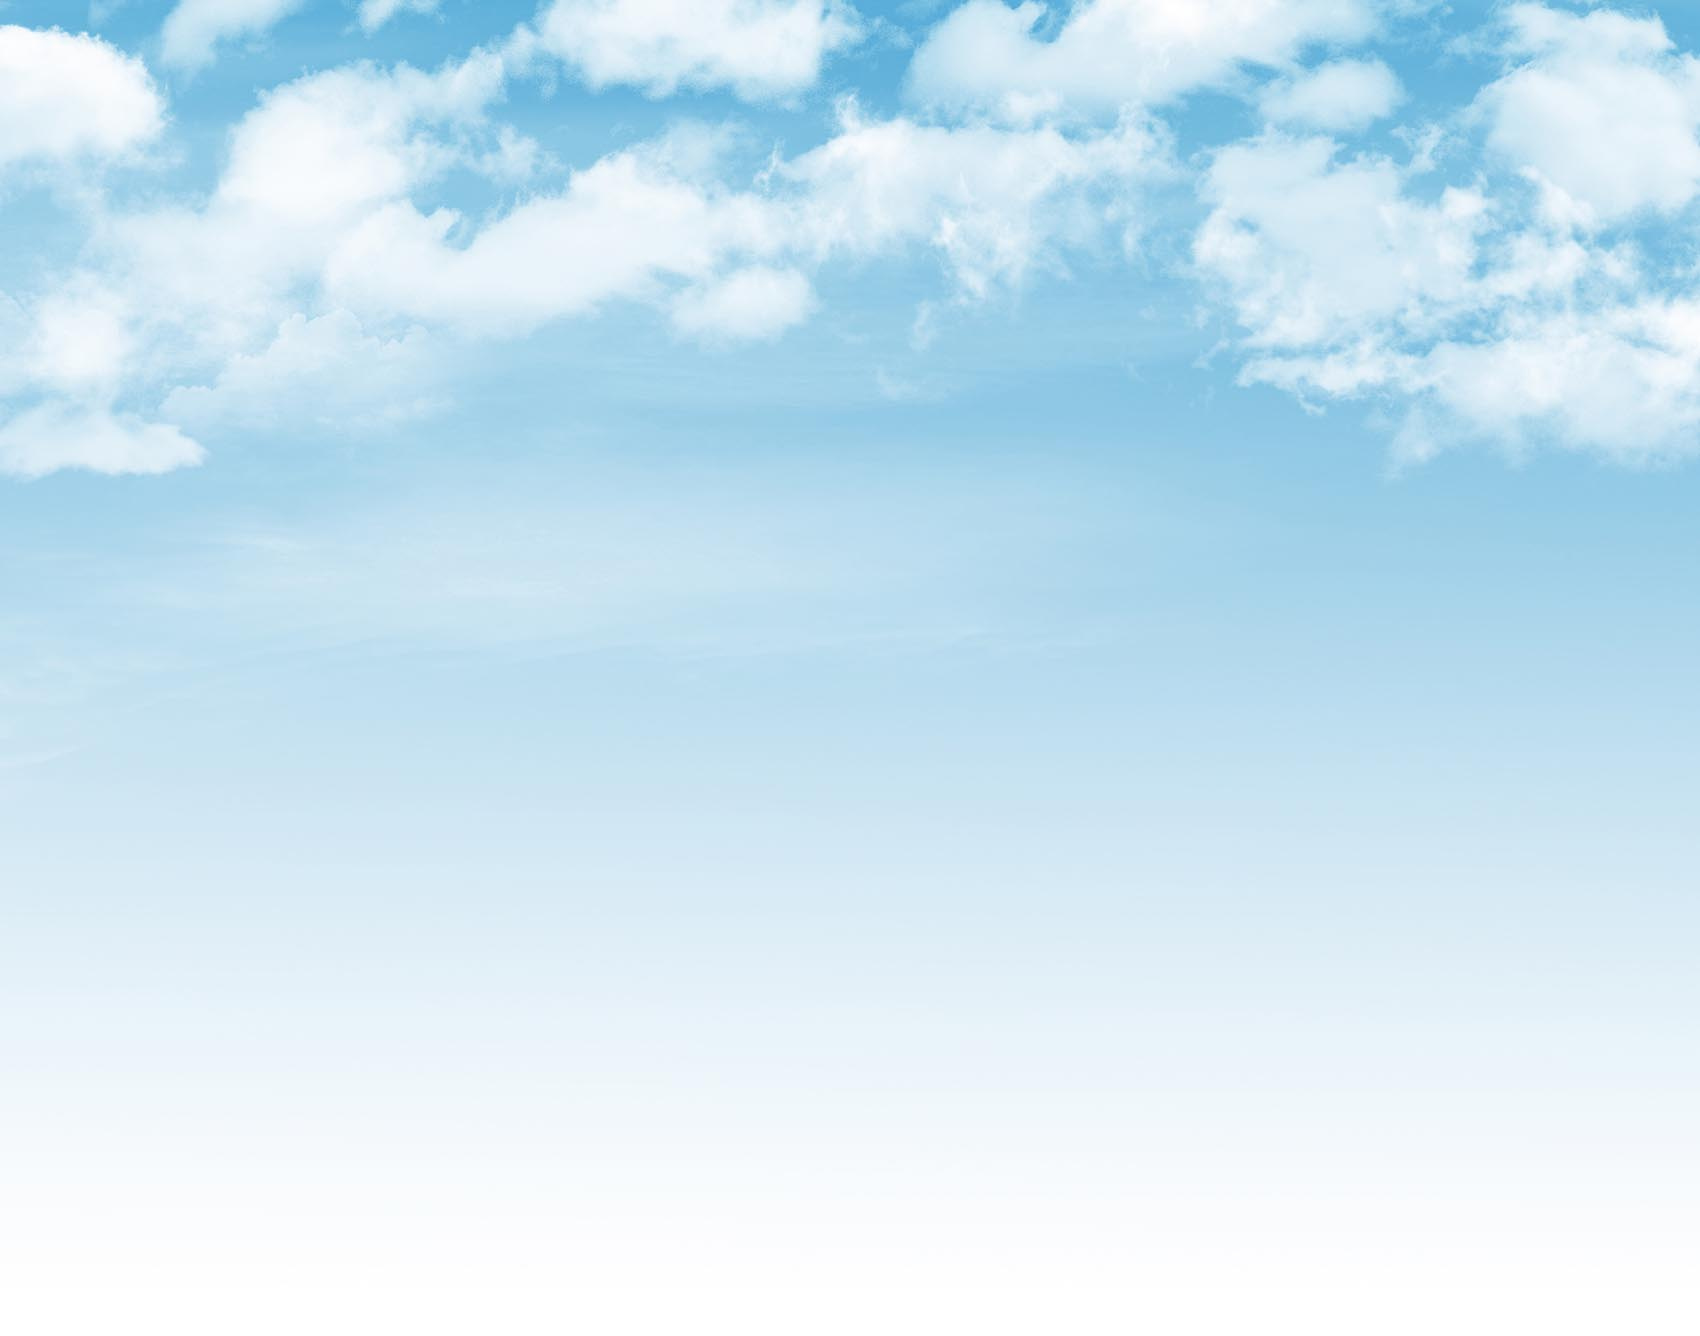 Blue sky with clouds background | Sander Mechanical Service